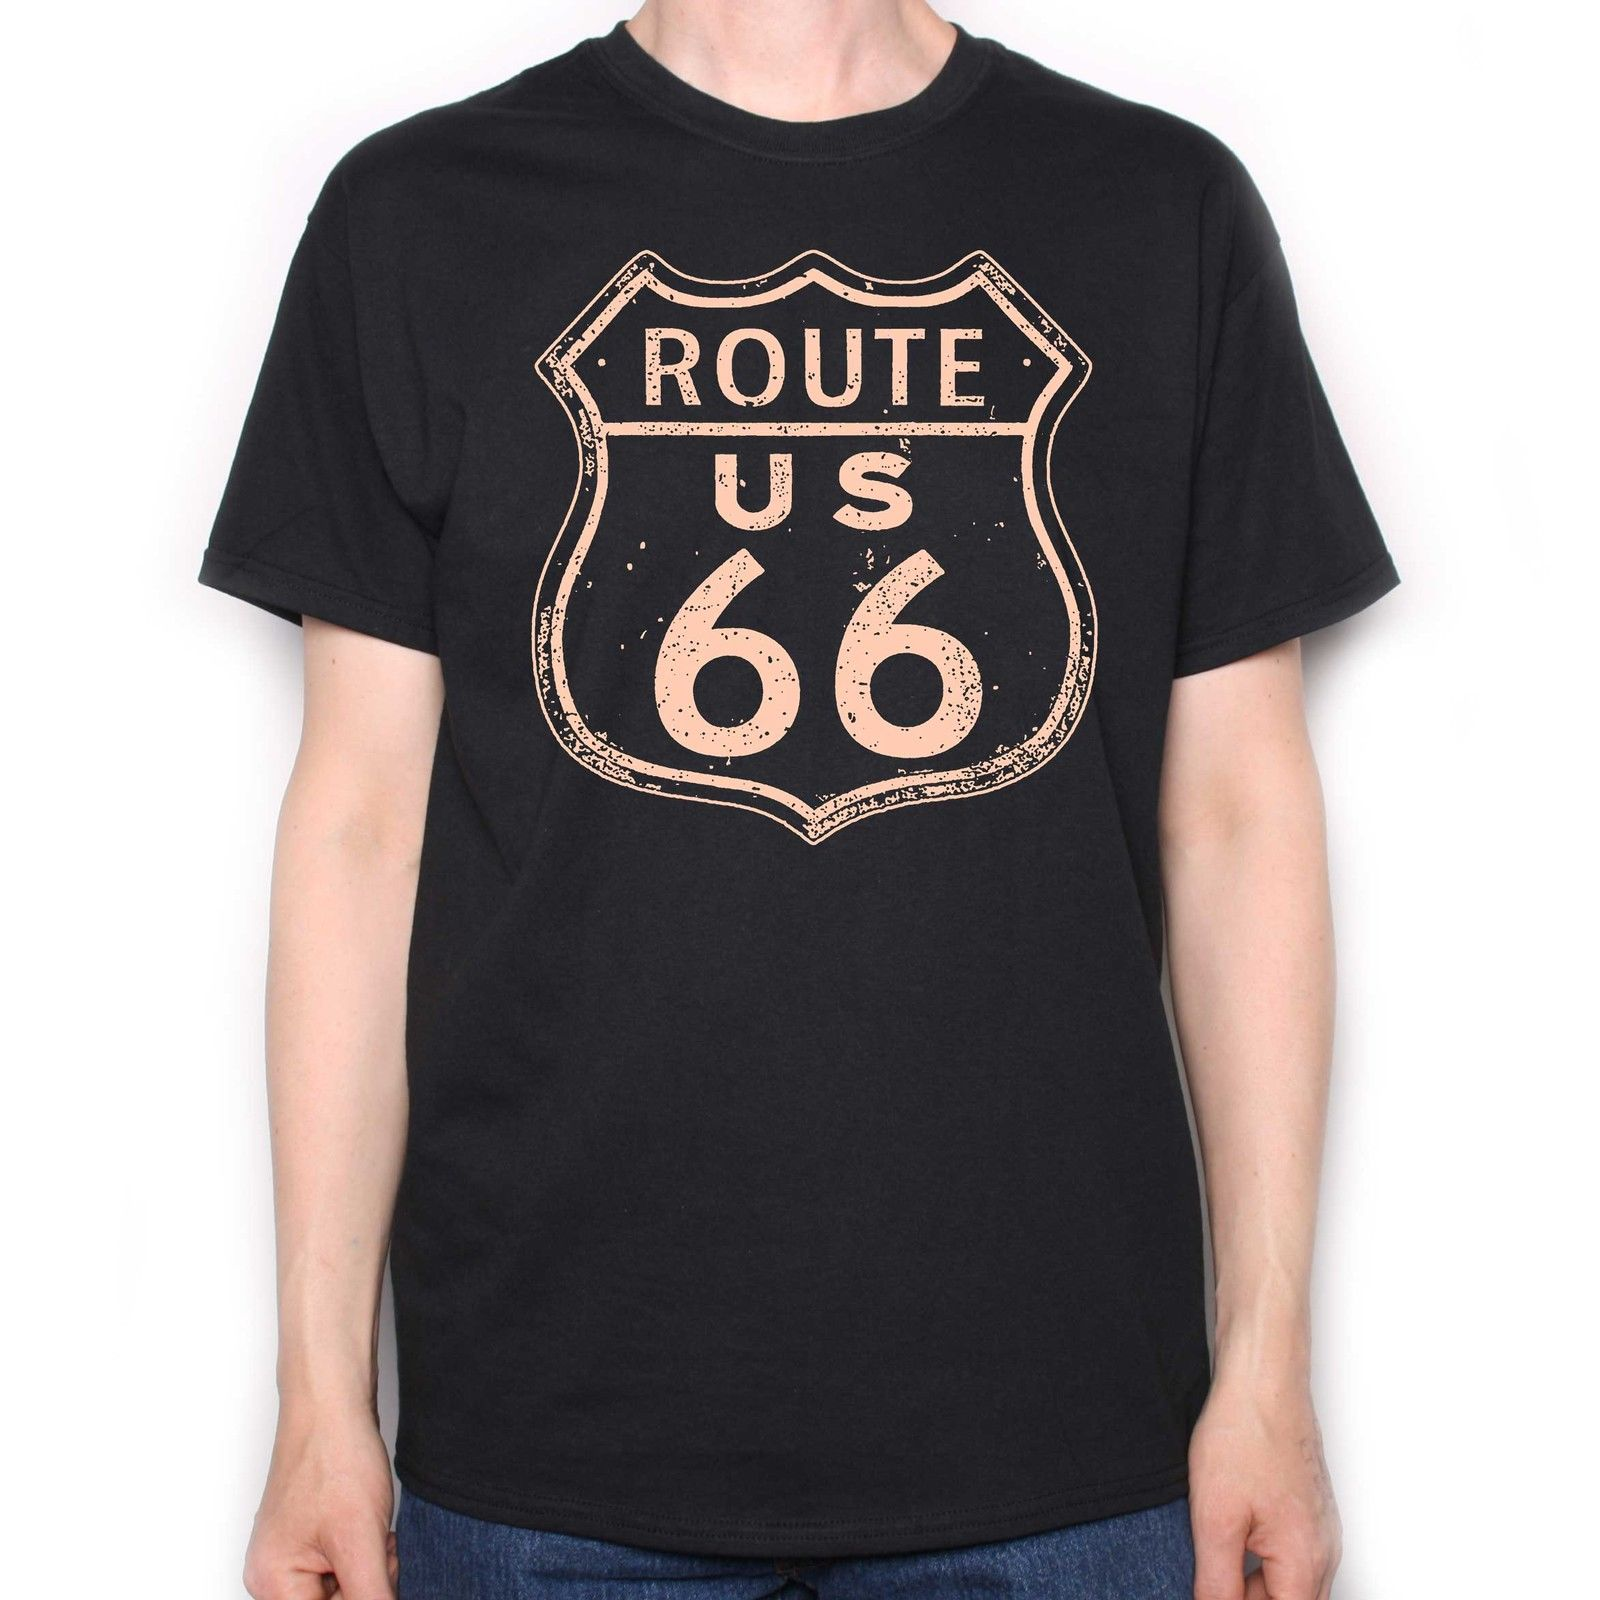 <font><b>ROUTE</b></font> <font><b>66</b></font> <font><b>T</b></font> <font><b>SHIRT</b></font> - MUSCLE CAR CUSTOM BIKE CHOPPER BOBBER CHEVY JAMES DEAN Summer Men'S fashion Tee,Comfortable <font><b>t</b></font> <font><b>shirt</b></font> image